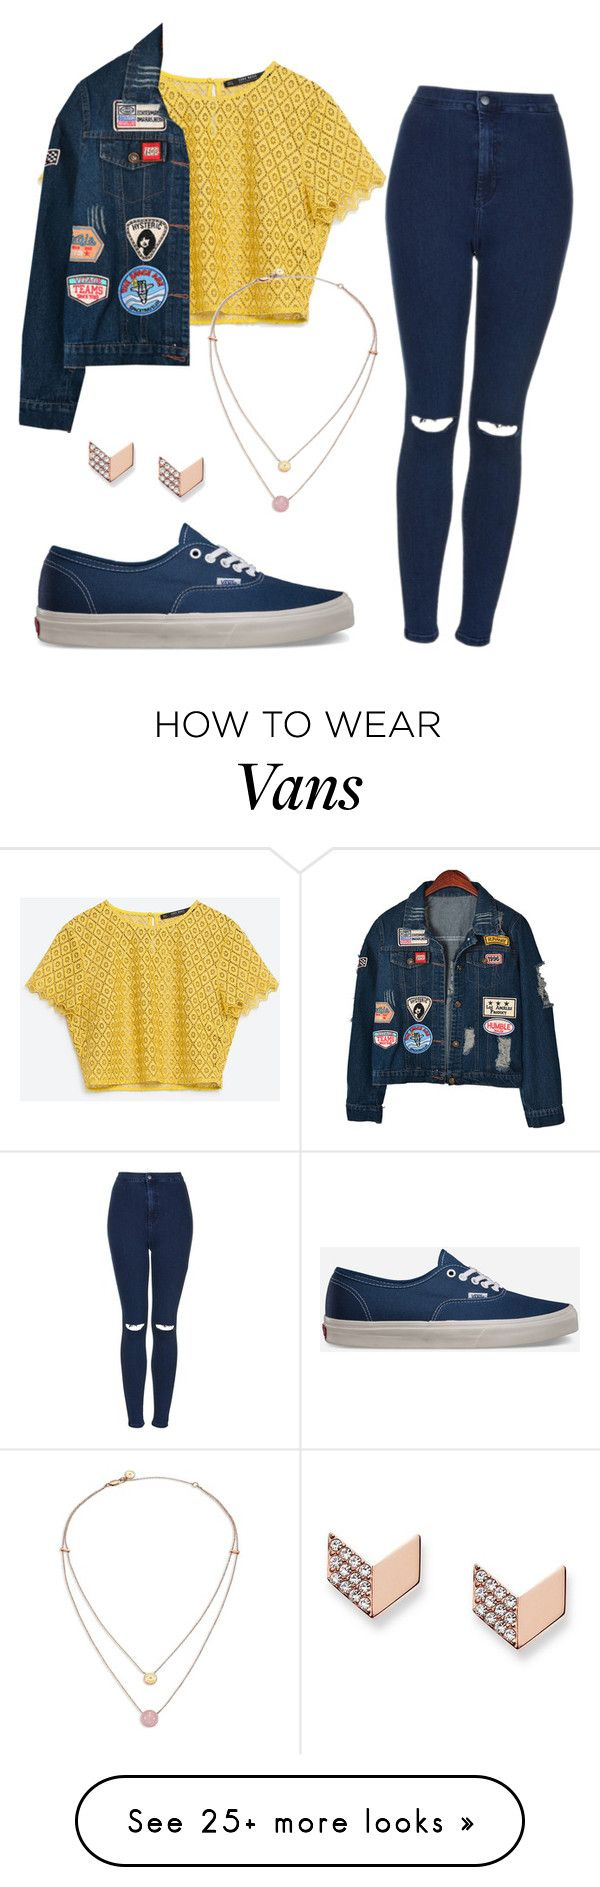 """""""#No name"""" by eemaj on Polyvore featuring Chicnova Fashion, Topshop, Vans, FOSSIL and Michael Kors"""